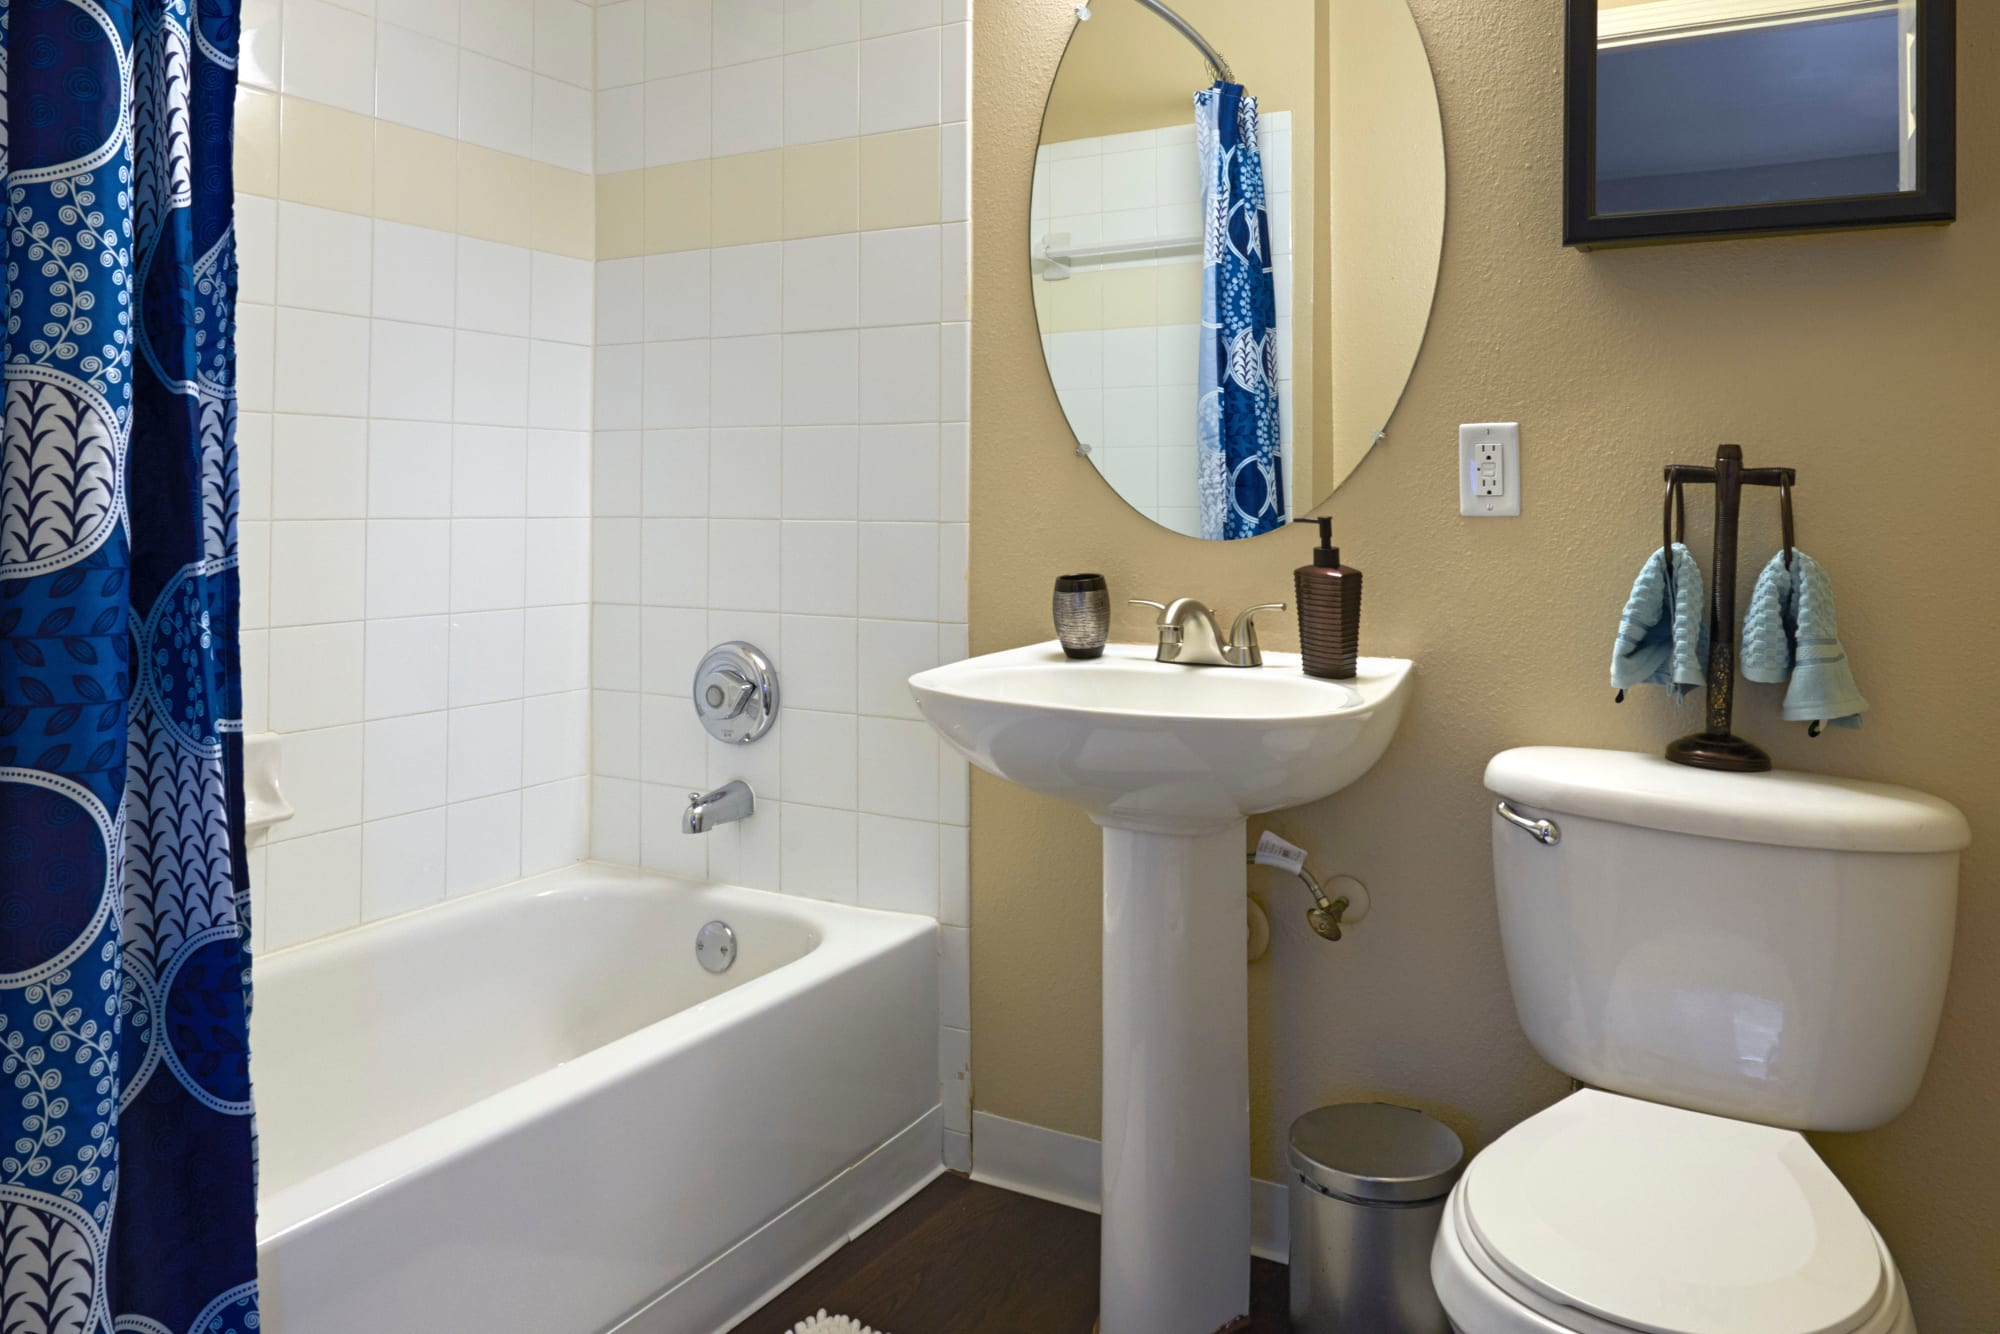 Bathroom with pedestal sink and tub at Crossroads at City Center Apartments in Aurora, Colorado